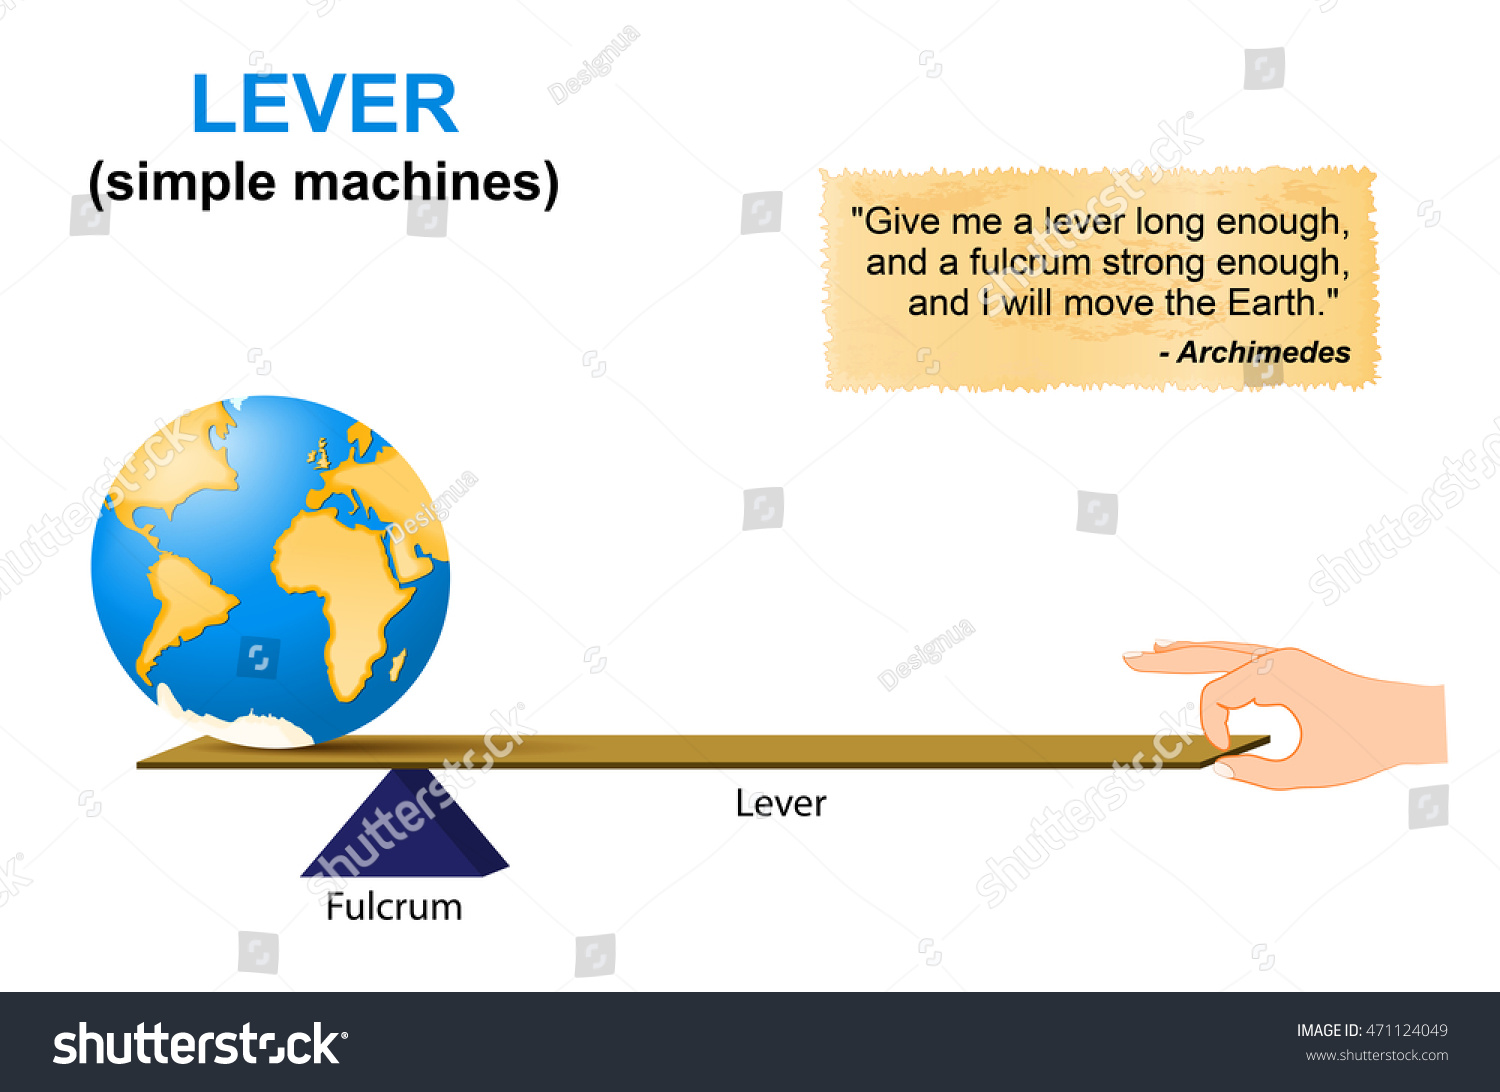 Stock Vector Lever Simple Machines Archimedes Lever Is A Machine Consisting Of A Beam Or Rigid Rod Pivoted At